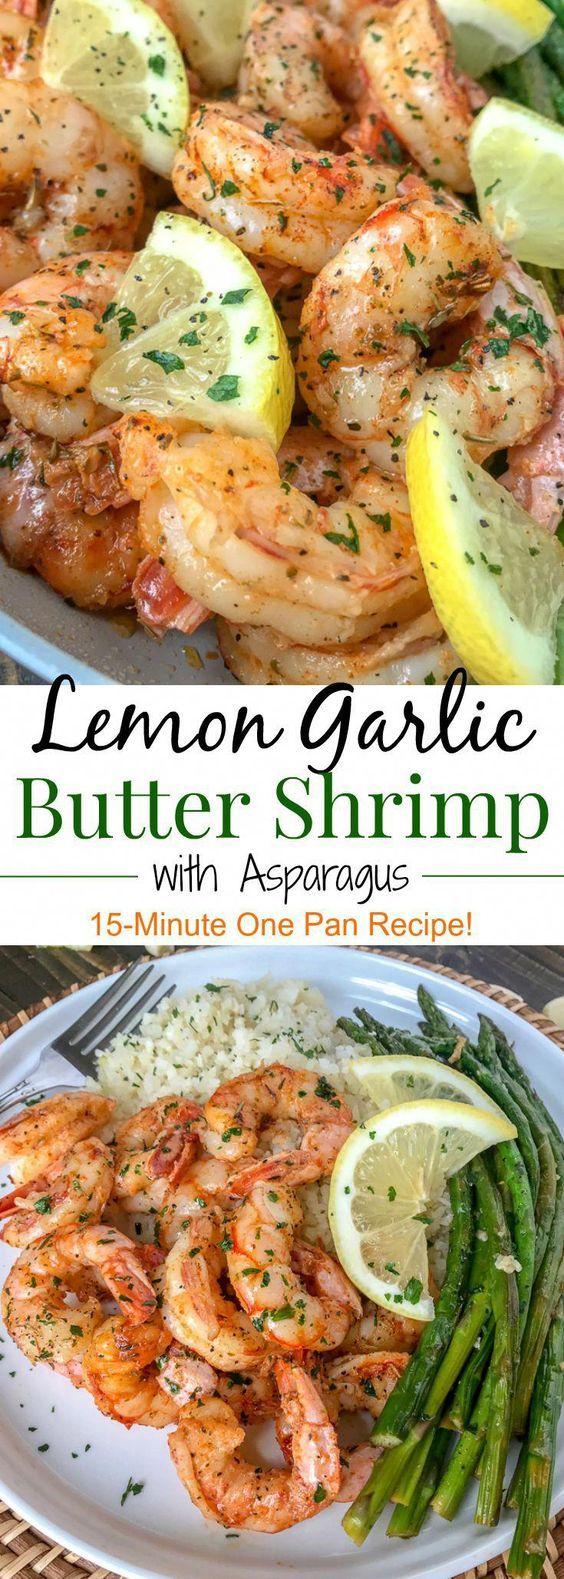 EASY LEMON GARLIC BUTTER SHRIMP WITH ASPARAGUS